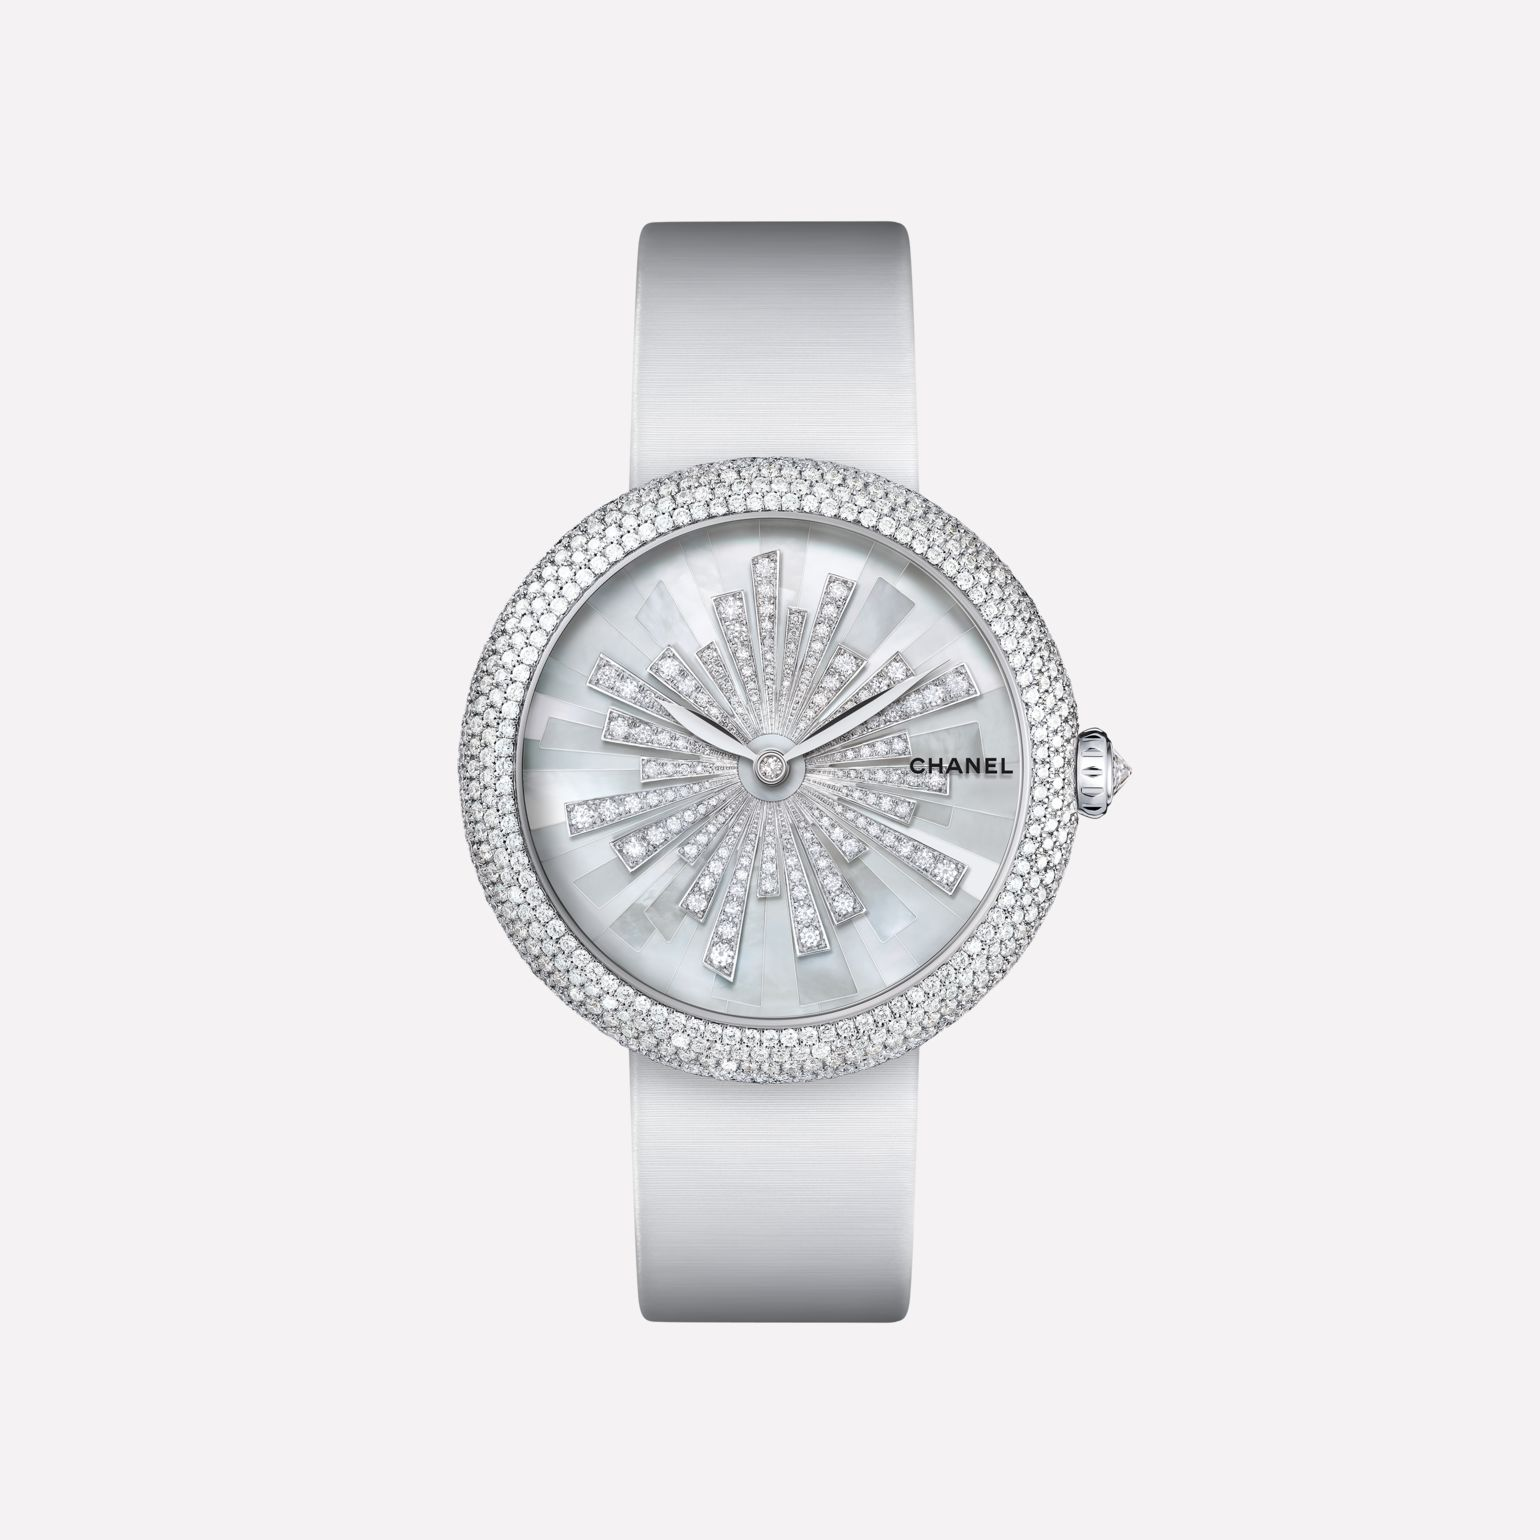 Mademoiselle Privé Watch Bijoux de Diamants Soleil jewelry - Pearl marquetry and diamonds